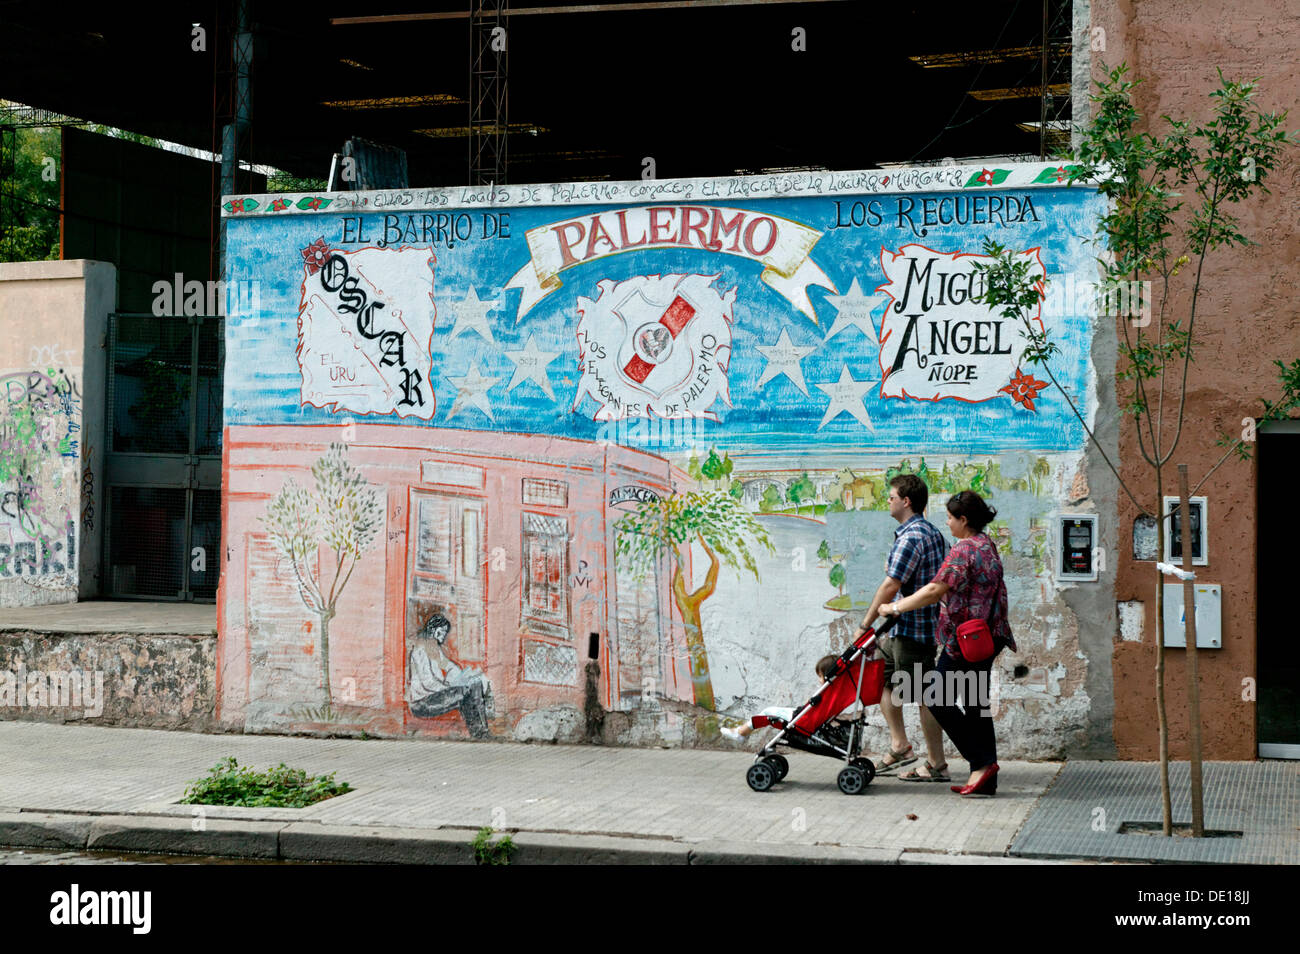 Family passing painted house, Palermo Viejo district, Buenos Aires, Argentina, South America - Stock Image